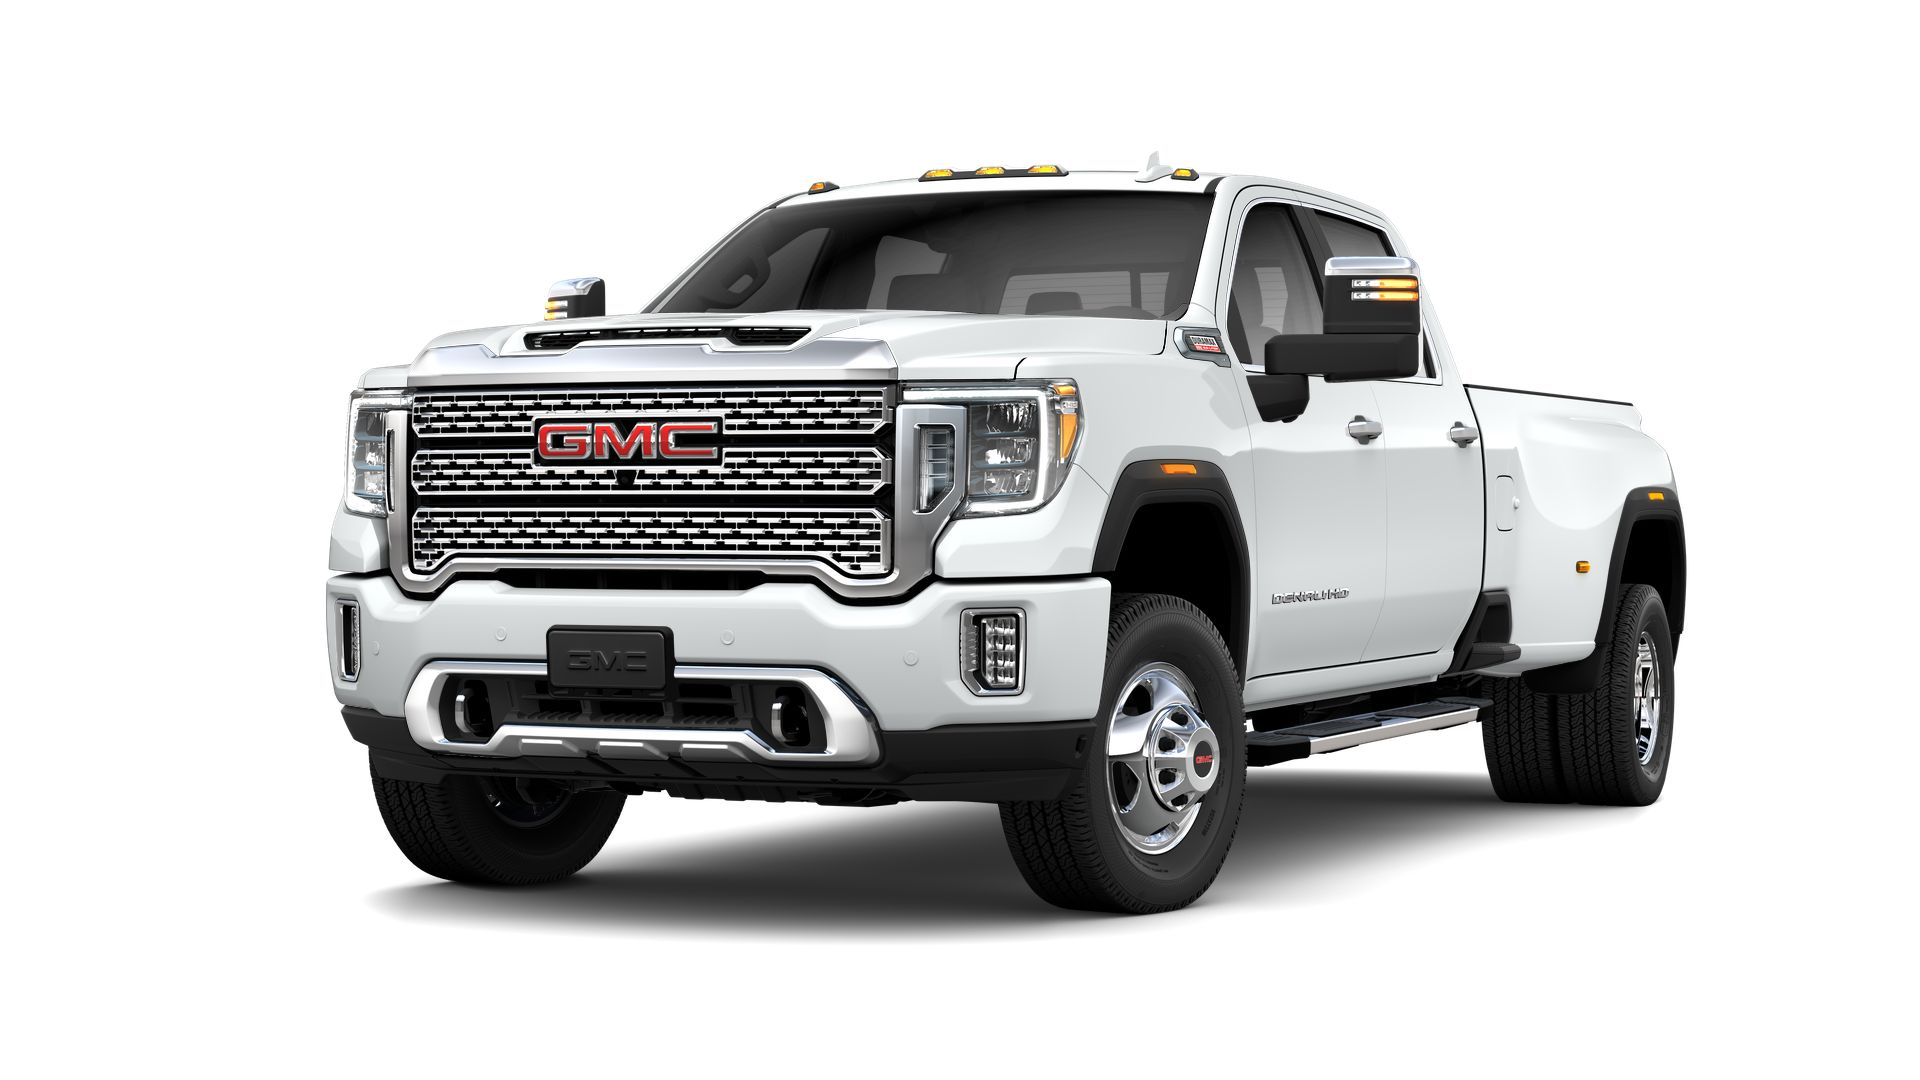 new 2021 gmc sierra 3500 hd for sale at parkway buick gmc vin 1gt49wey1mf106890 new 2021 gmc sierra 3500 hd for sale at parkway buick gmc vin 1gt49wey1mf106890